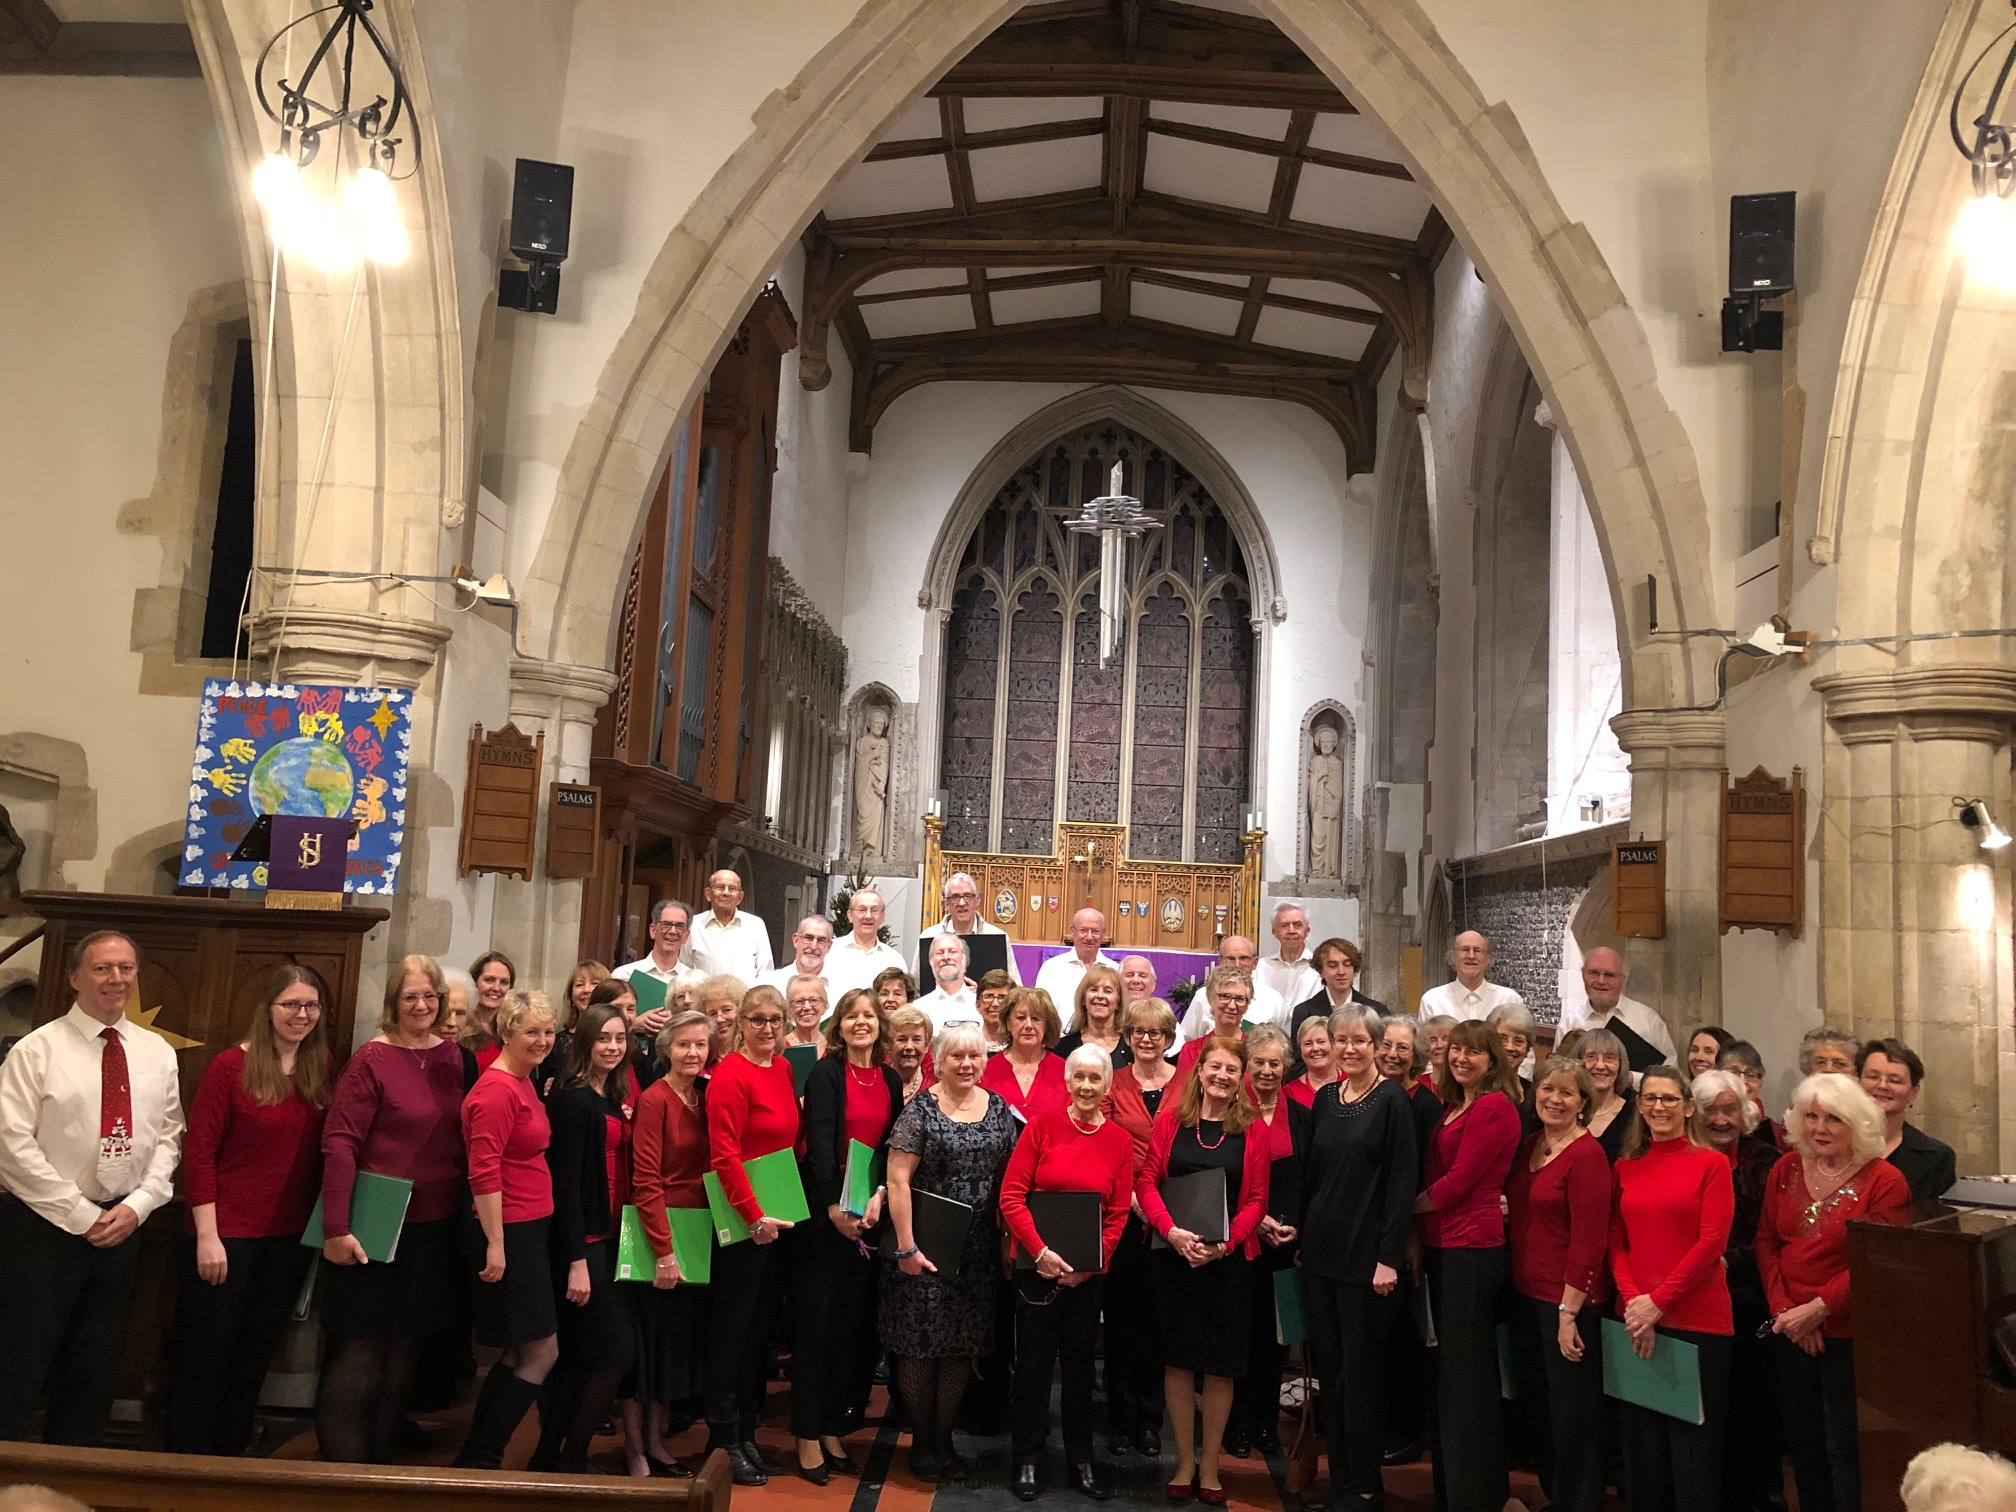 Our Christmas concert 2018 joint with The Heatherton Singers